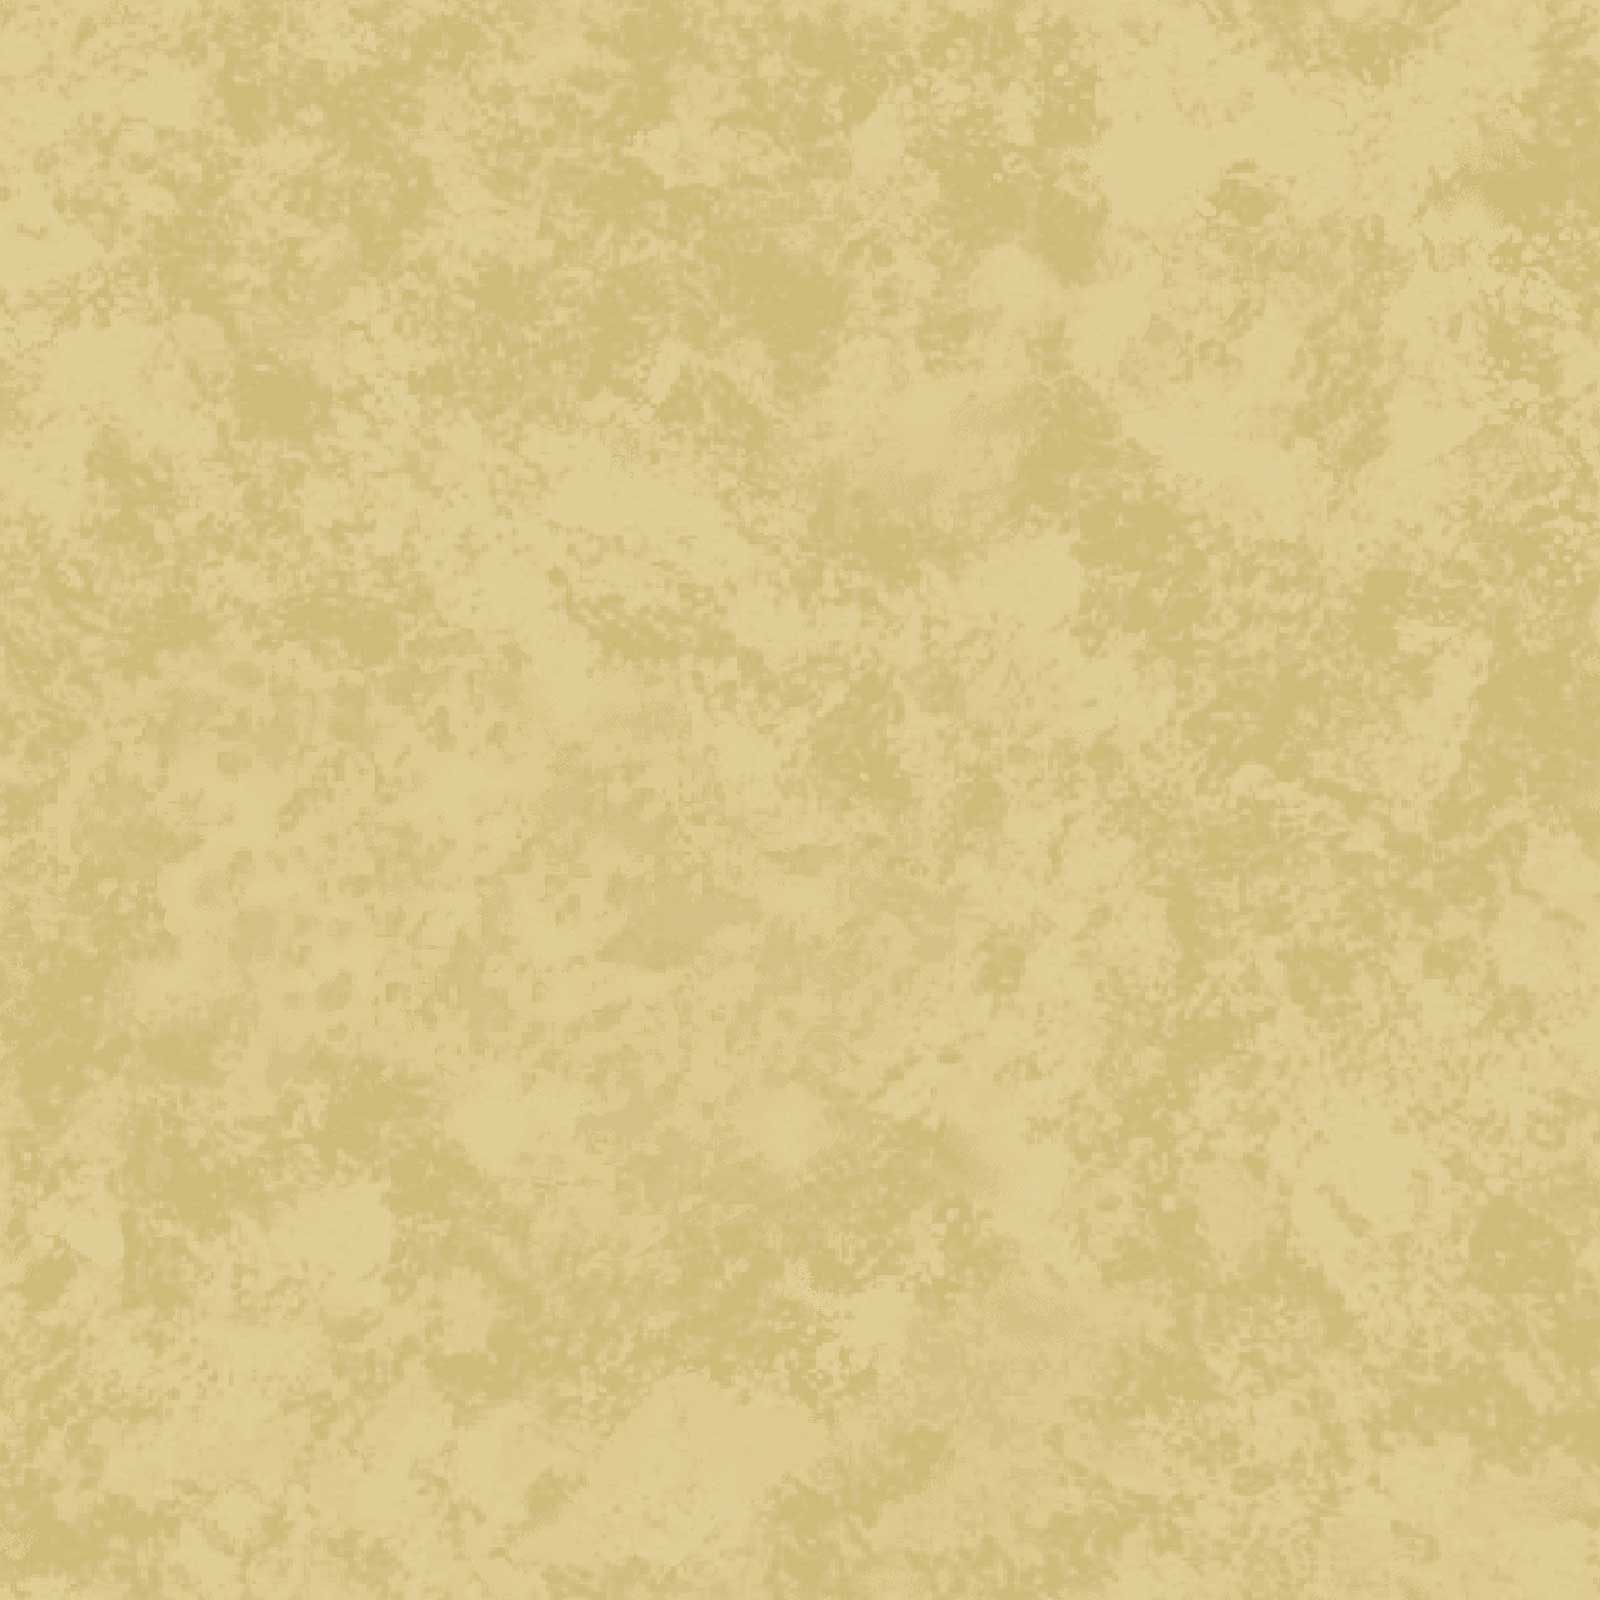 Oasis Shades 100% Cotton Blender Toasted Almond